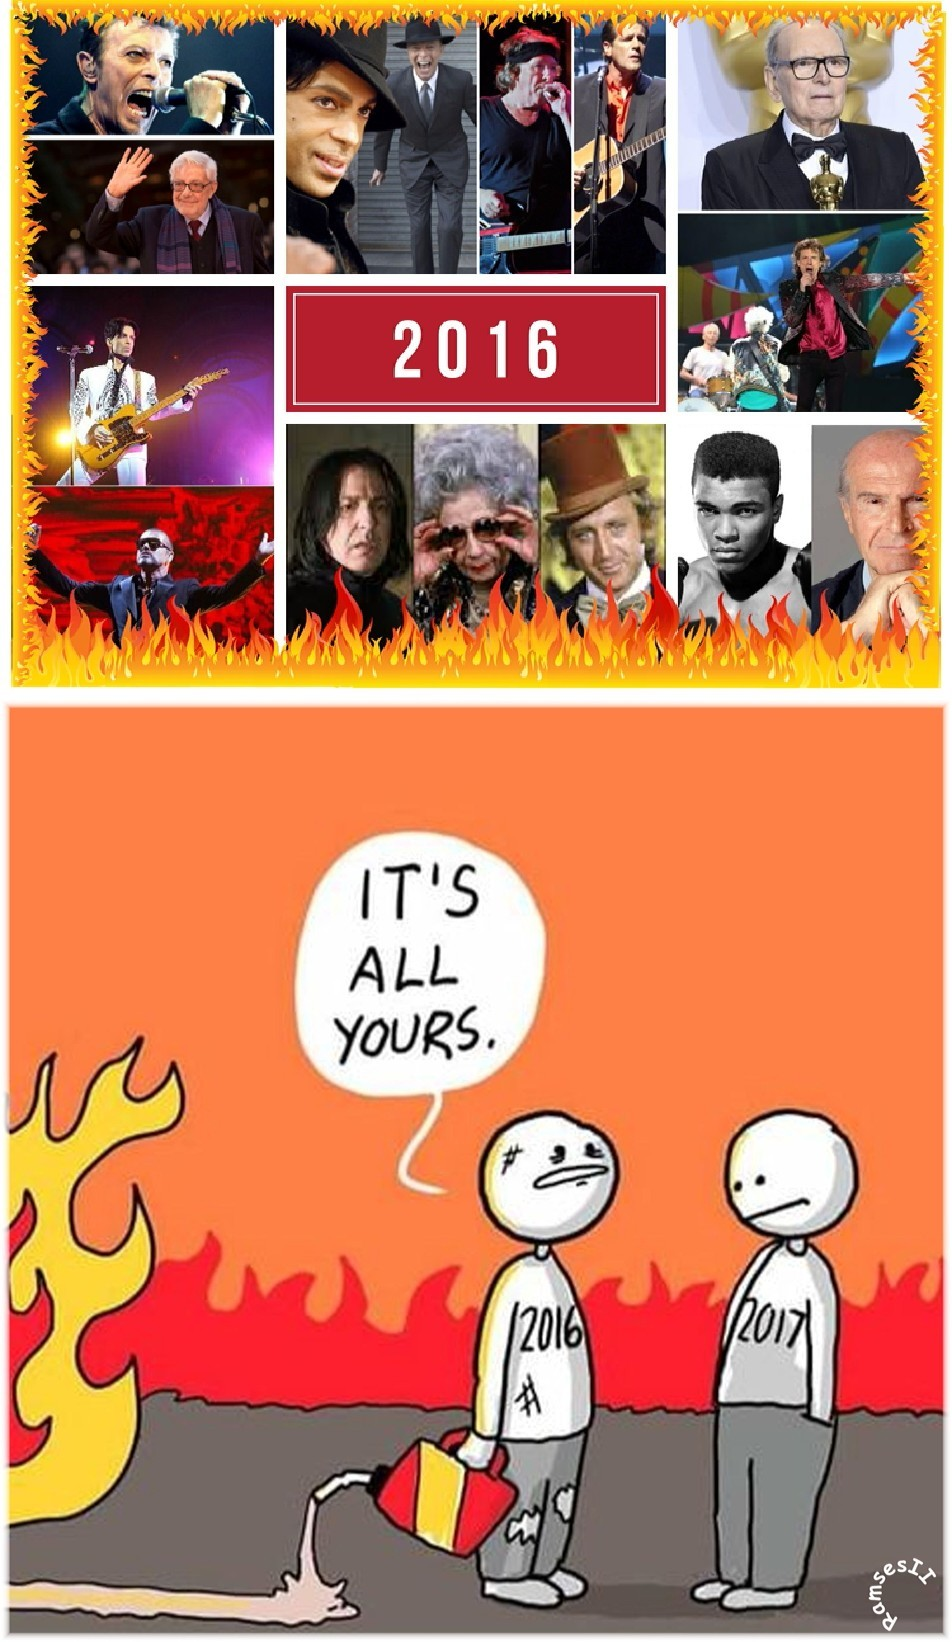 Poor 2016 got f*cked up - meme